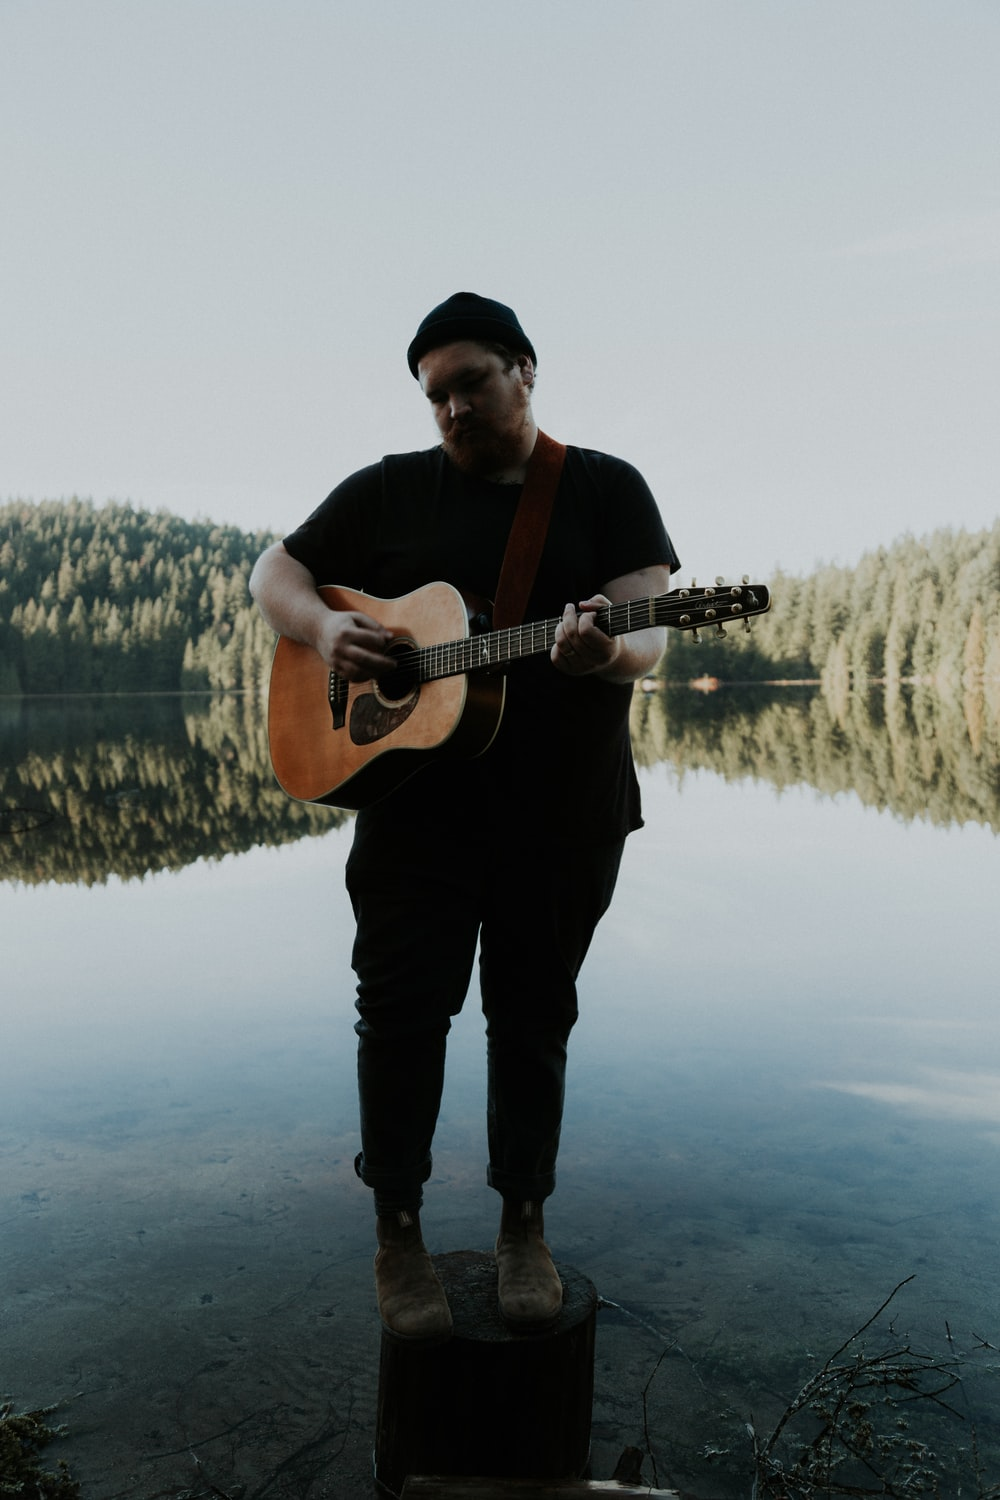 man standing on wooden post playing guitar